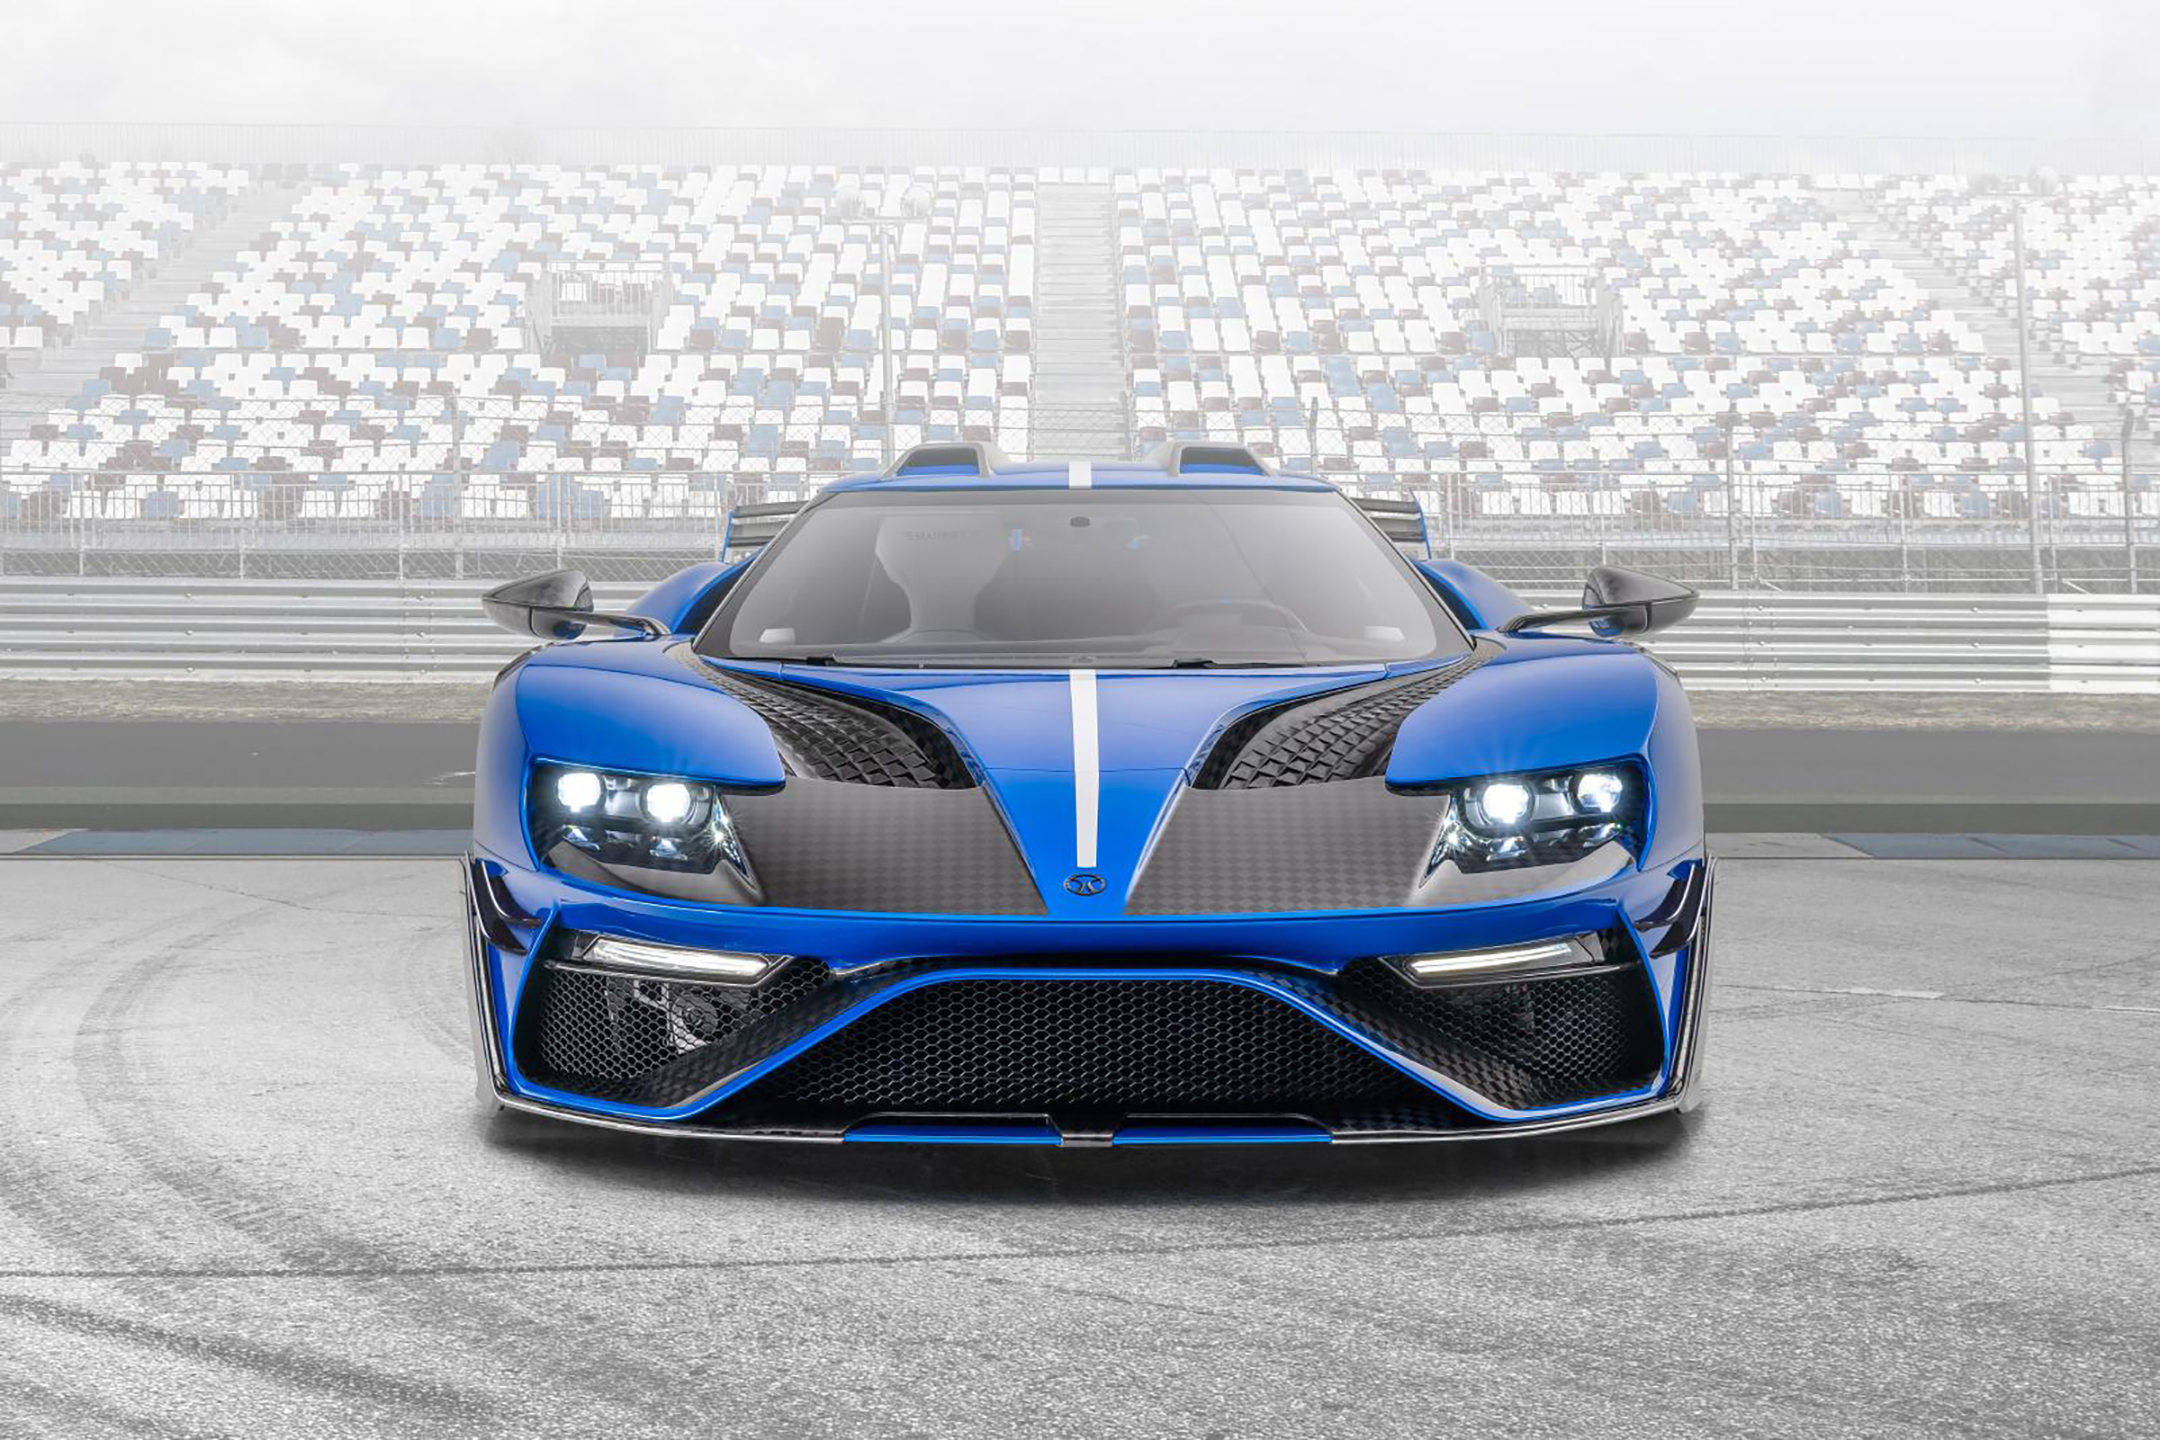 Le MANSORY - Ford GT custom - 2020 - front-face / face avant